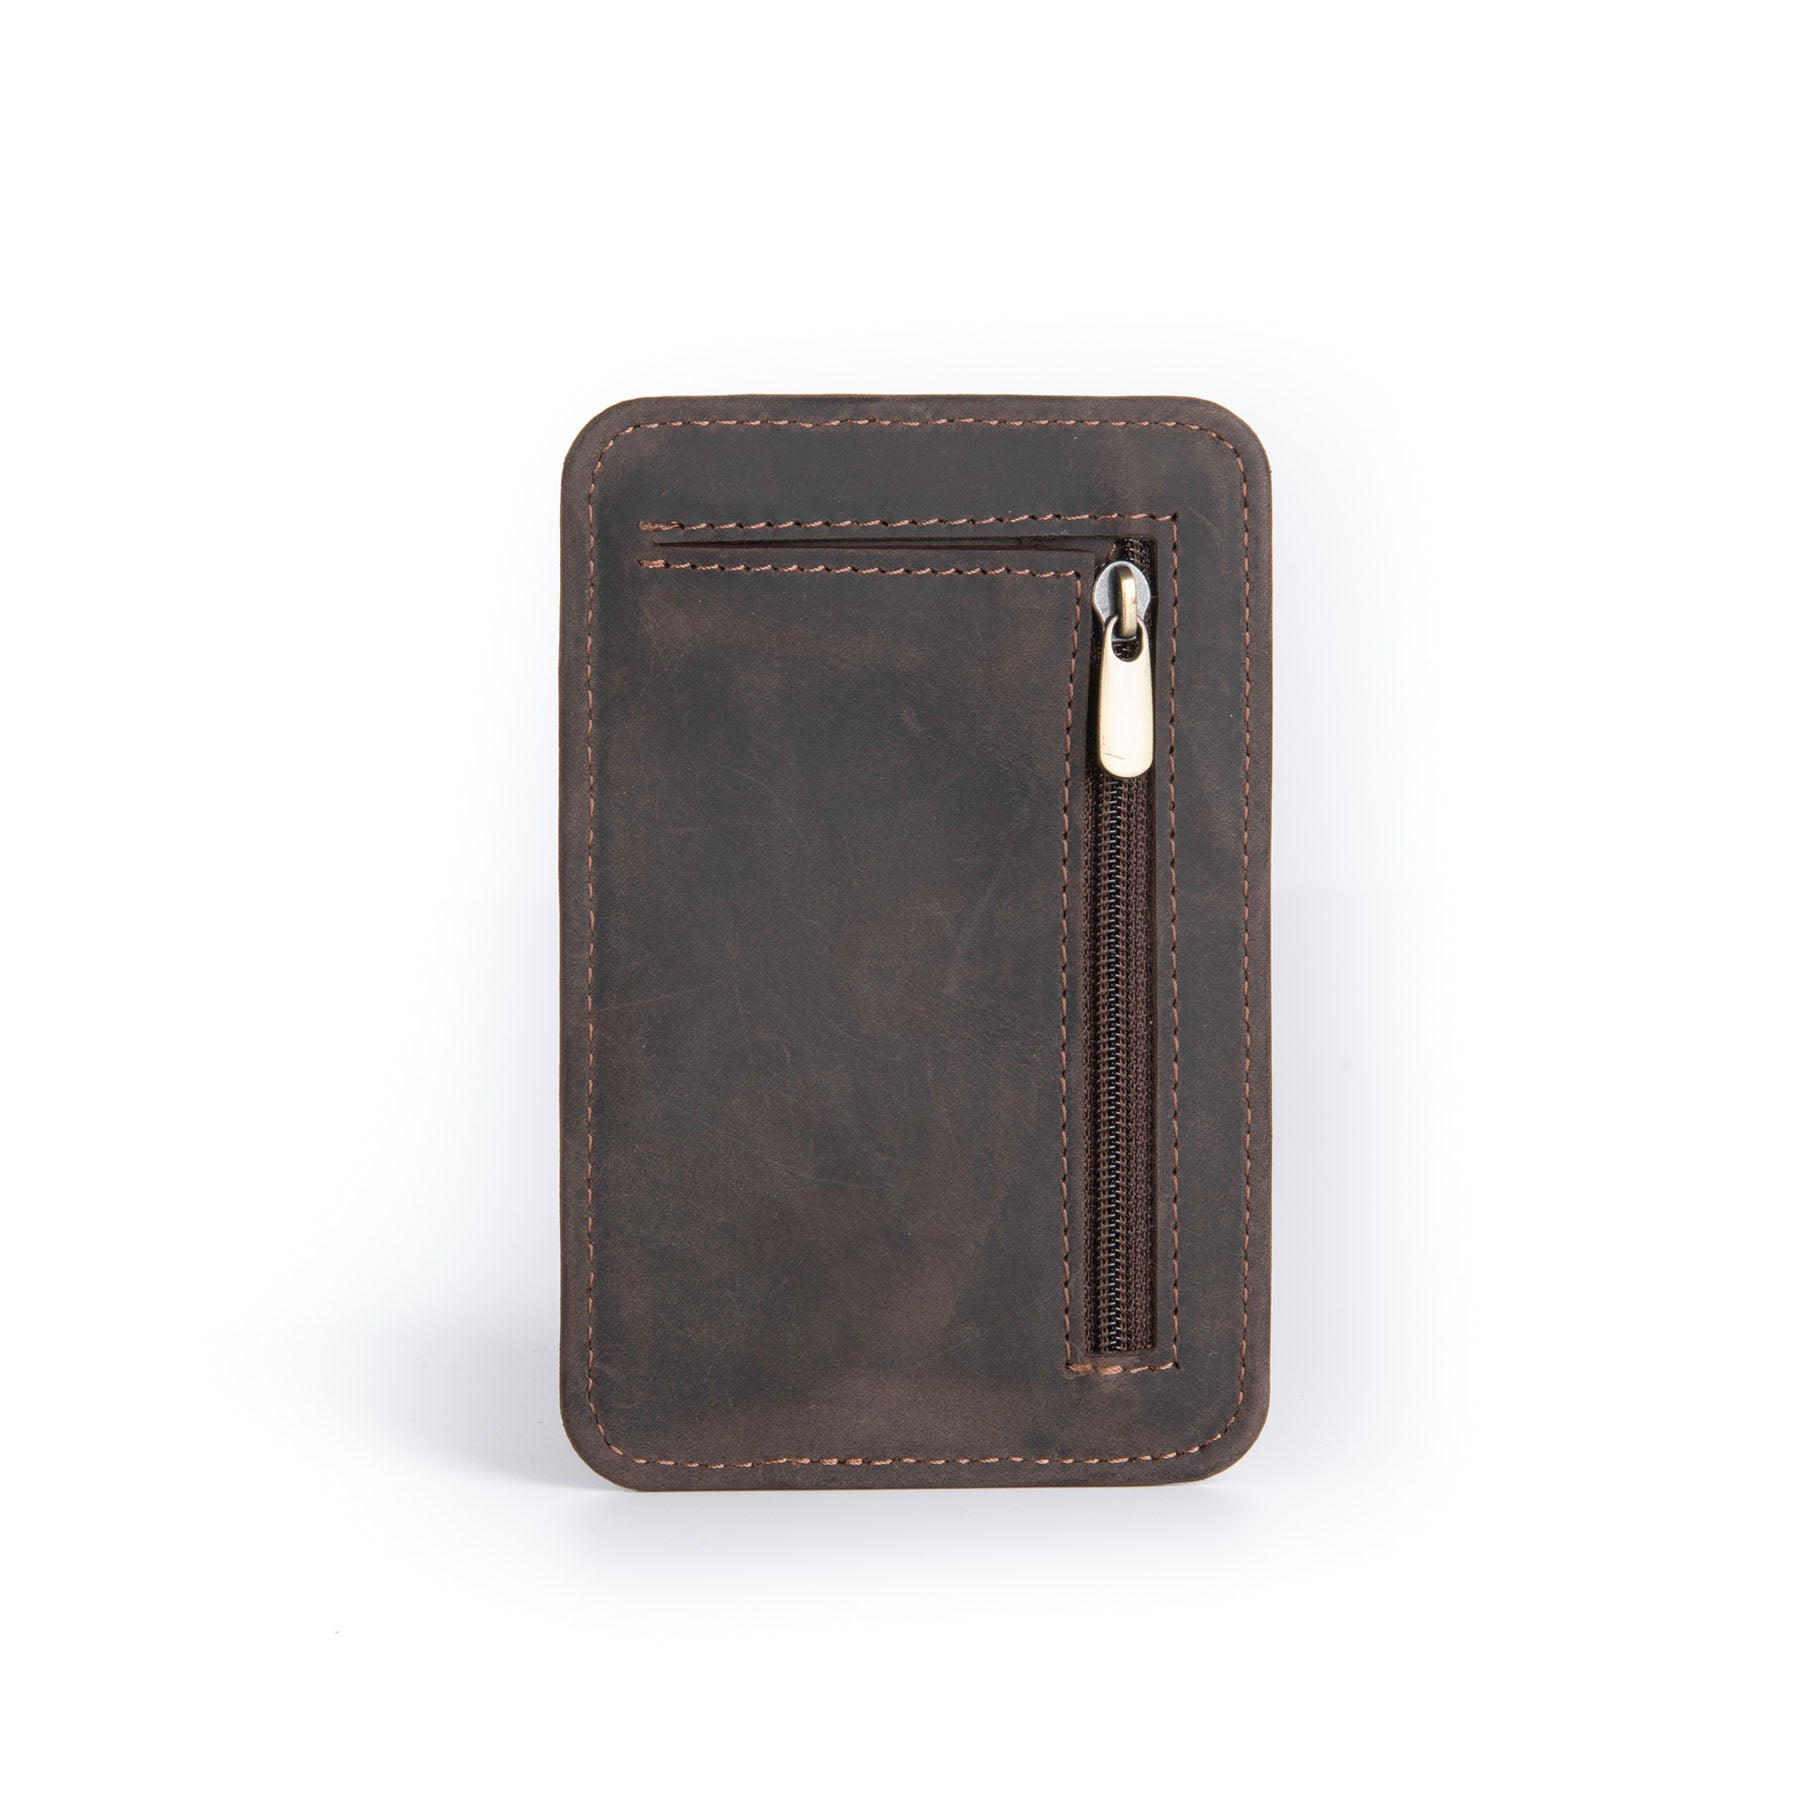 Canyon Leather Wallet - Chestnut 3